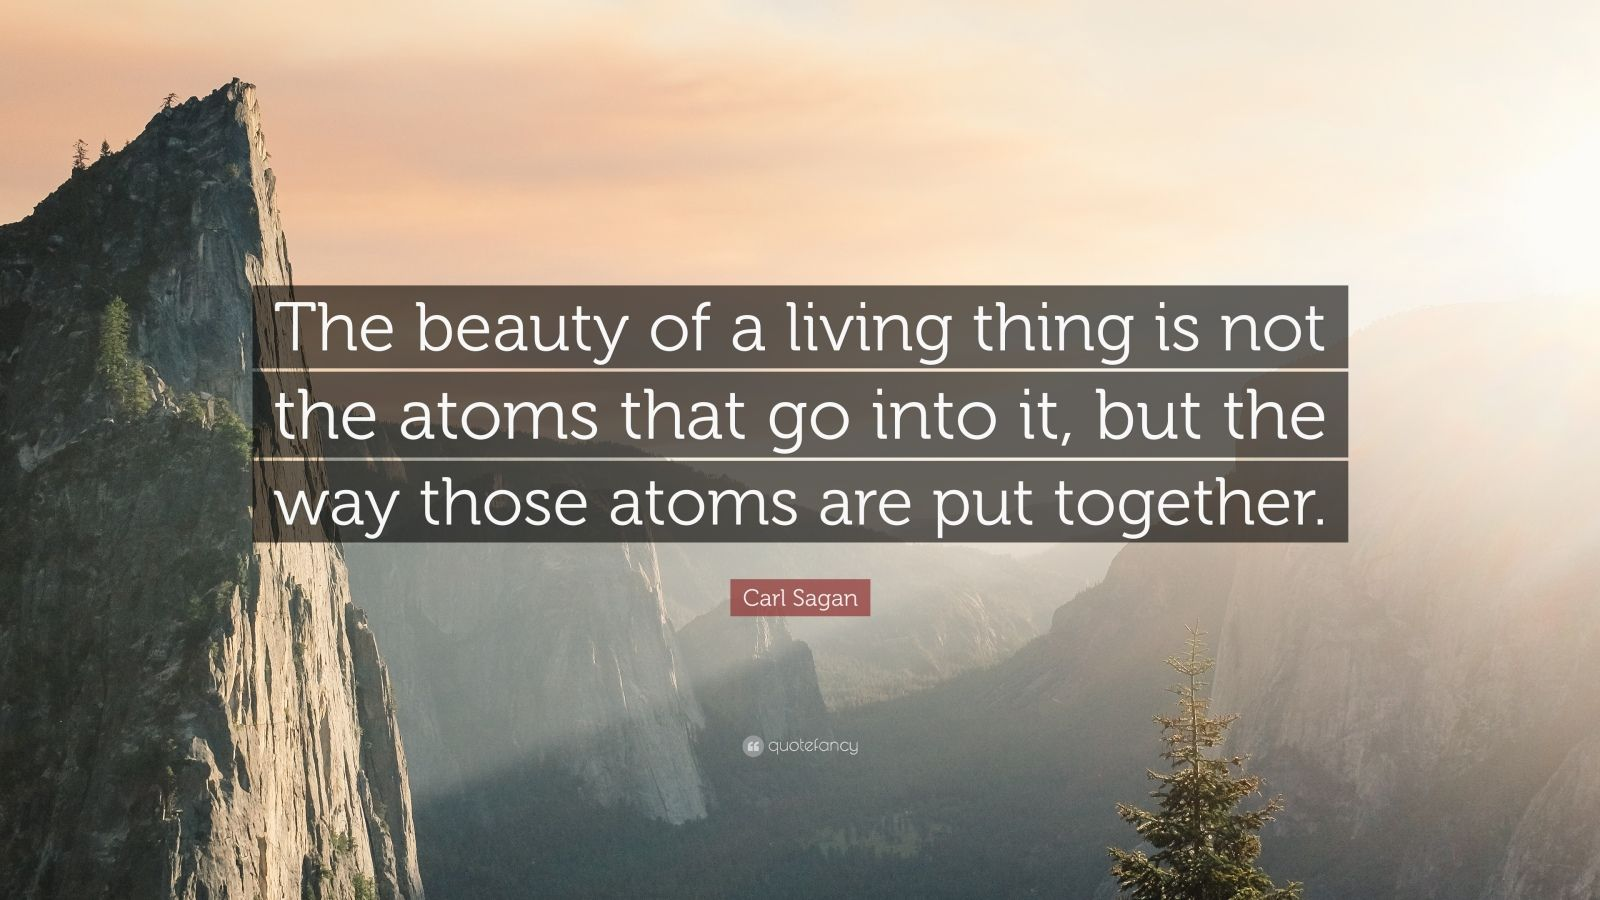 """Carl Sagan Quote: """"The beauty of a living thing is not the atoms that go into it, but the way those atoms are put together."""""""